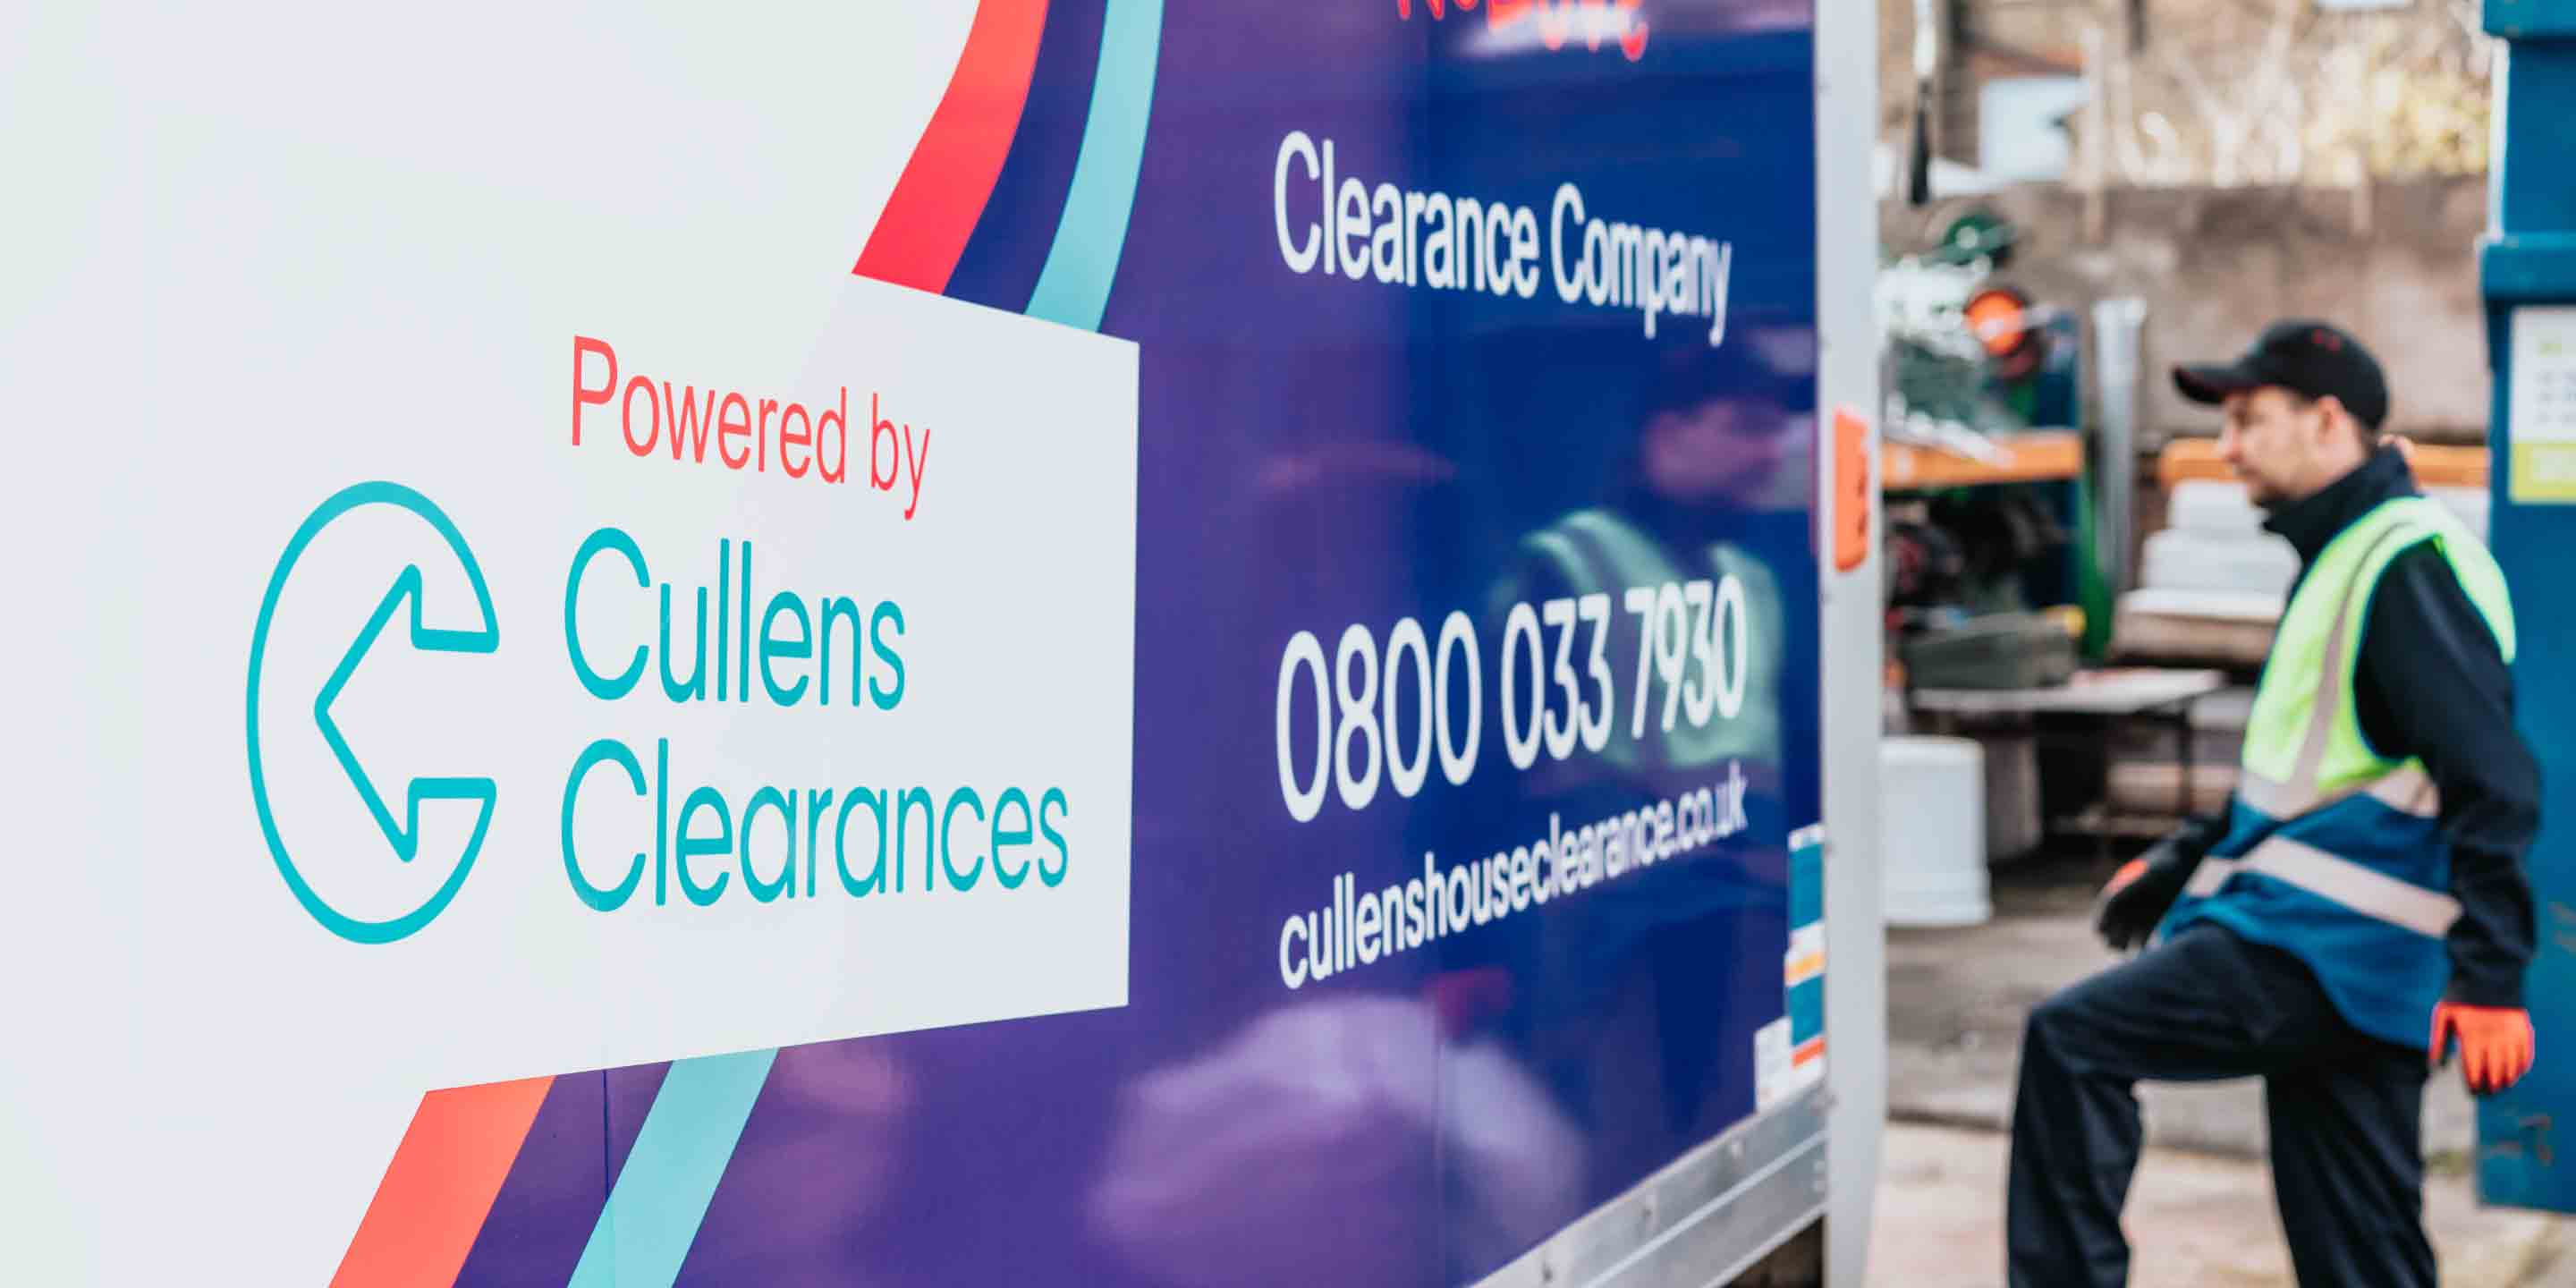 Cobham Office Clearance Company